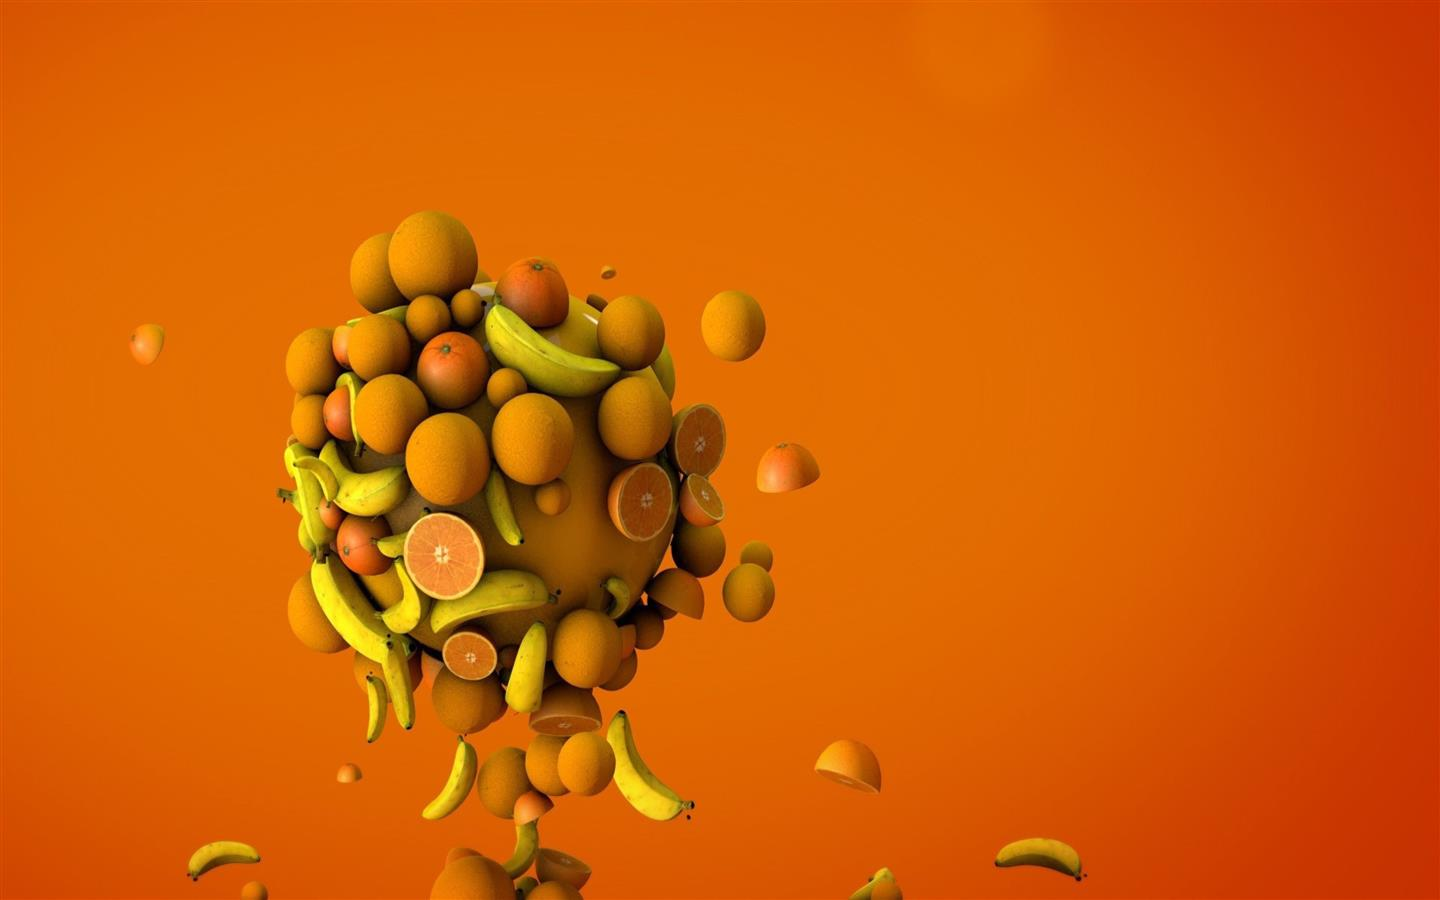 1440x900 3D Fruits 4K Background Wallpapers